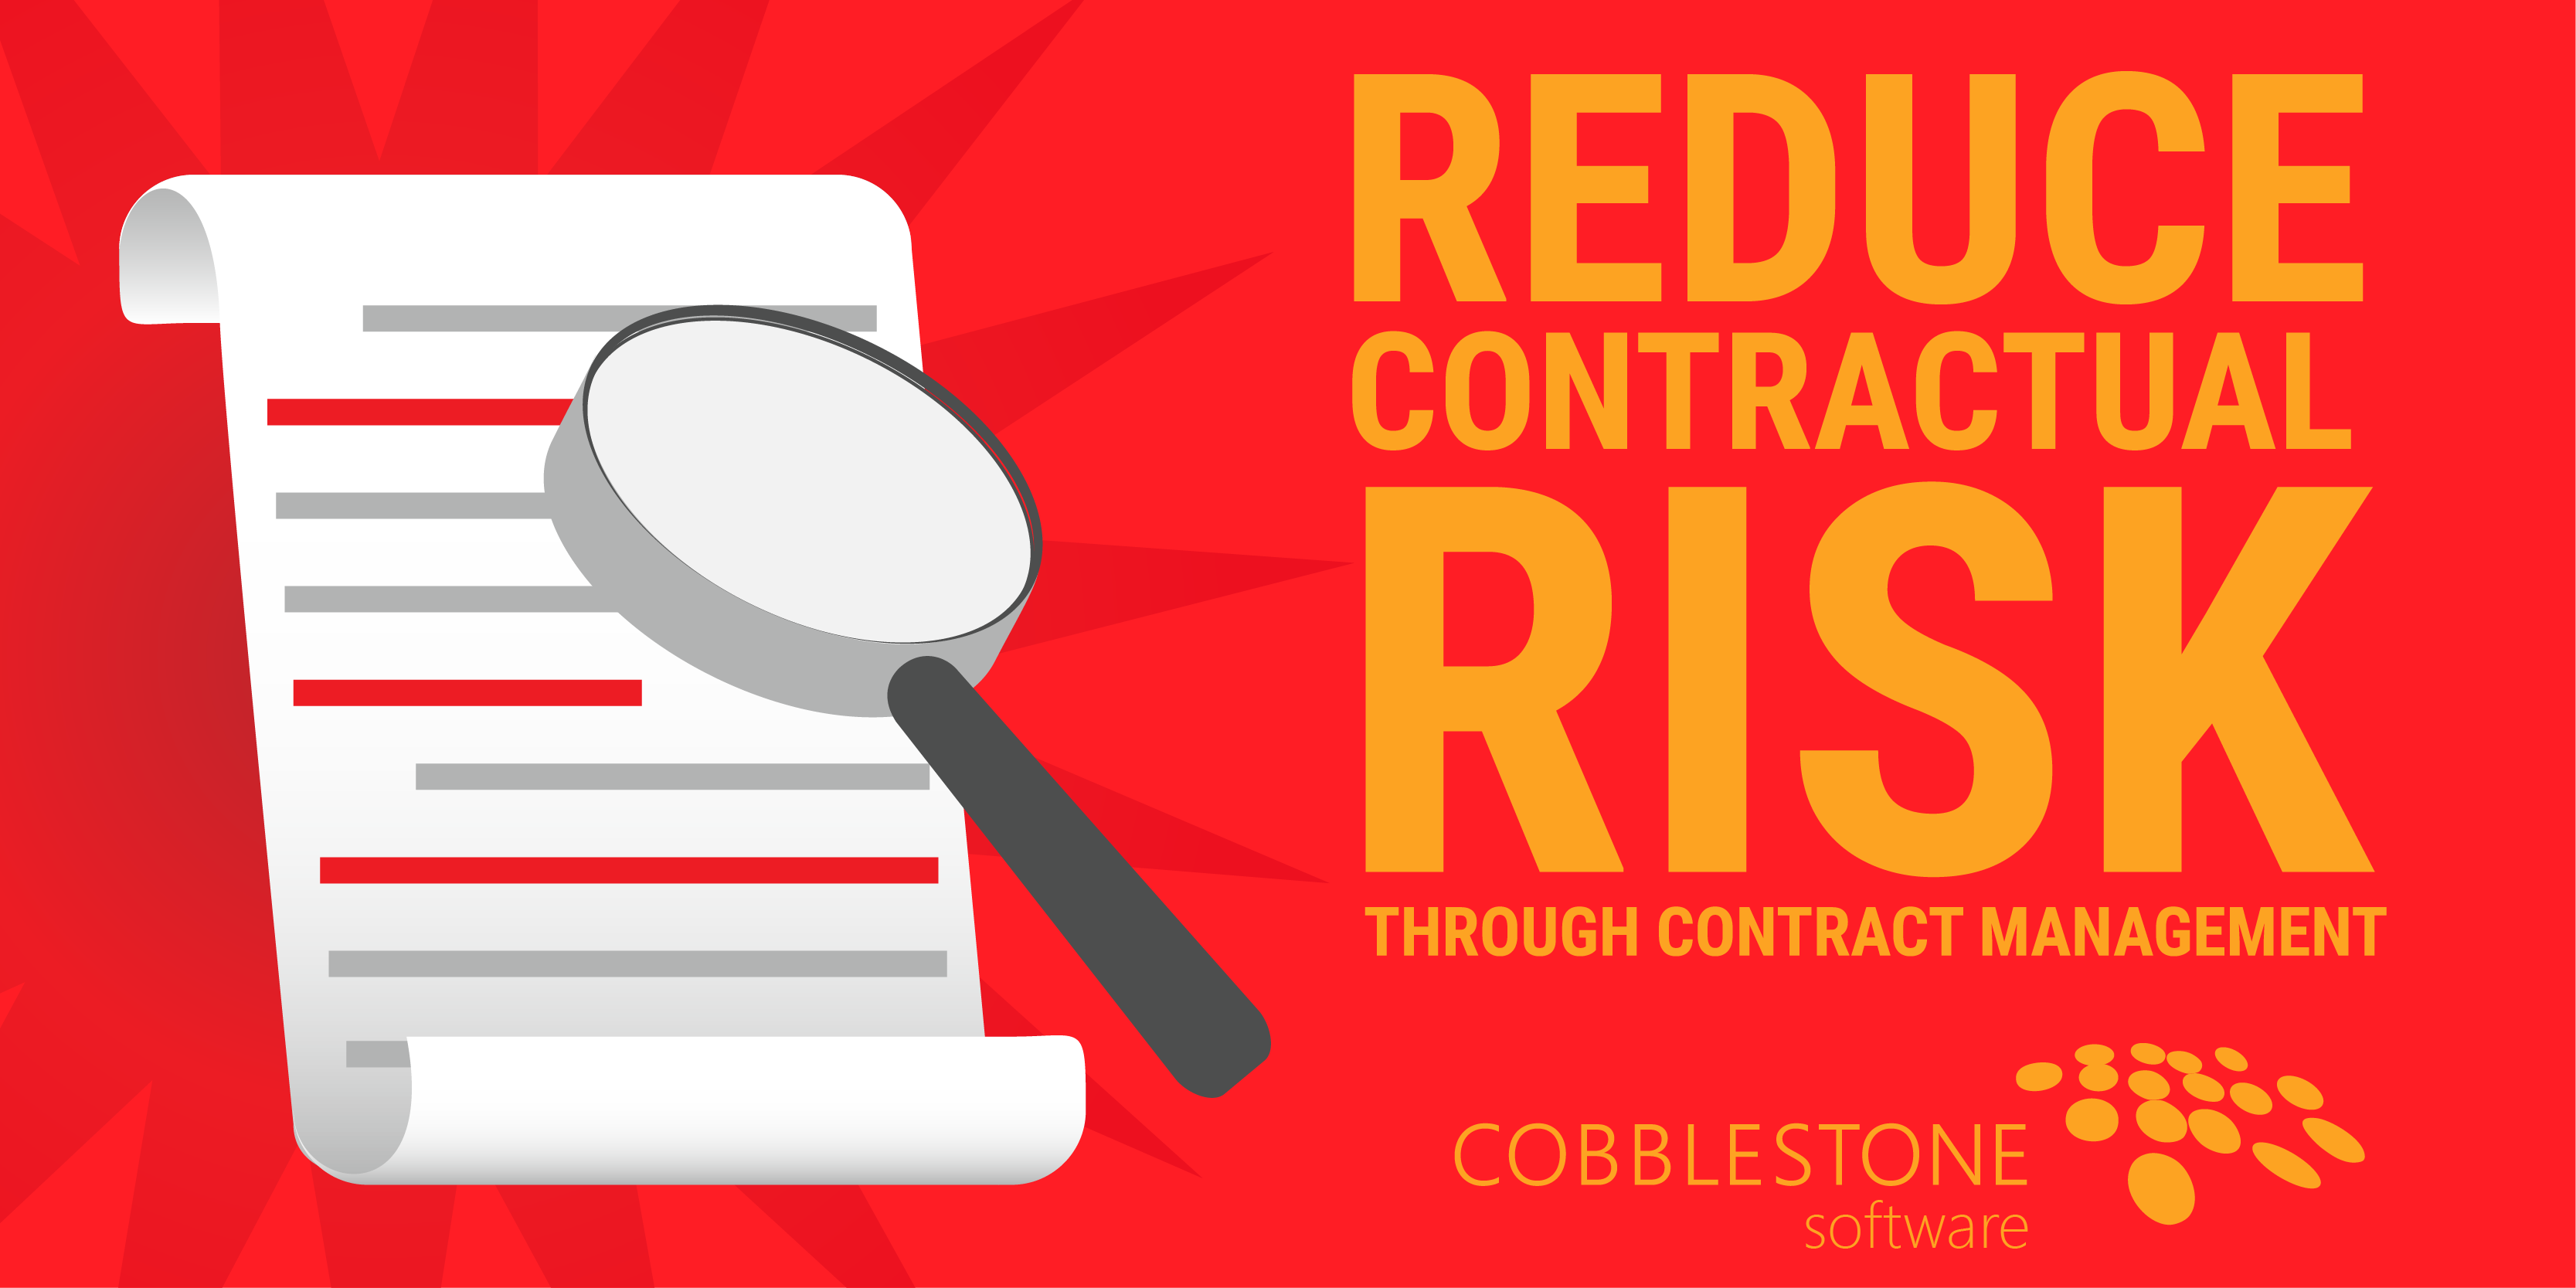 Reduce Contractual Risk Through Contract Management